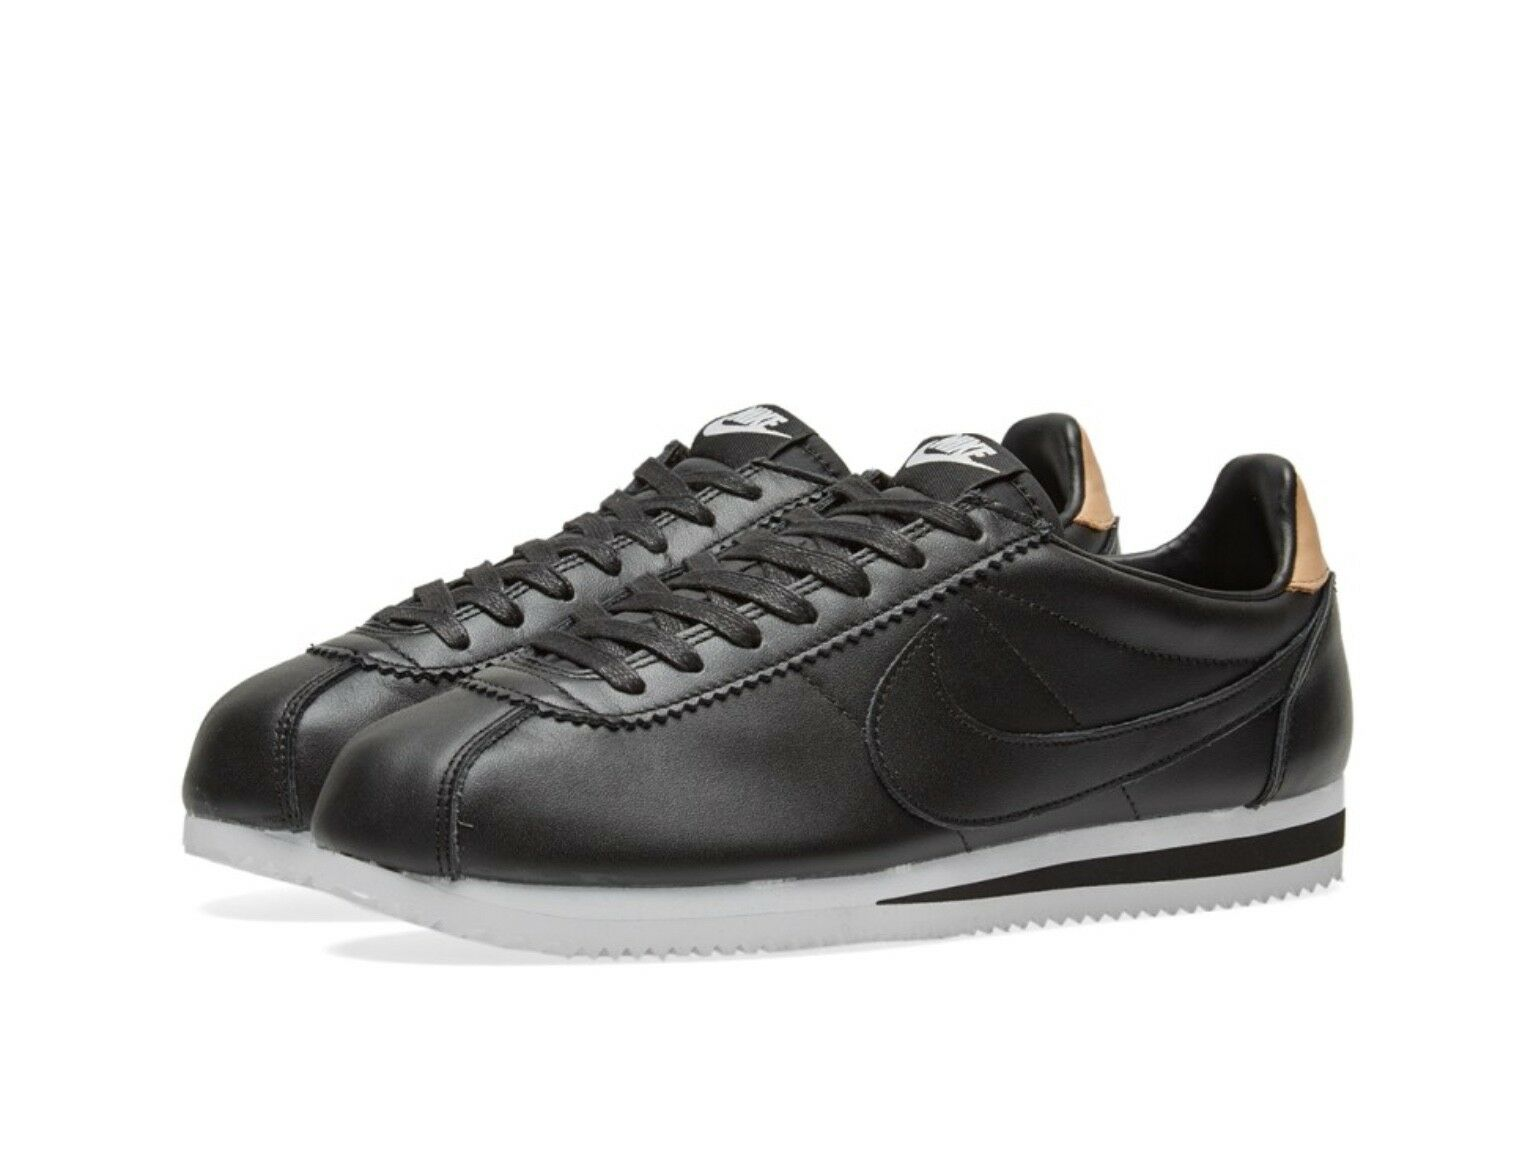 NIKE CLASSIC CORTEZ LEATHER SE UK5.5/EU38.5/US6 861535-004